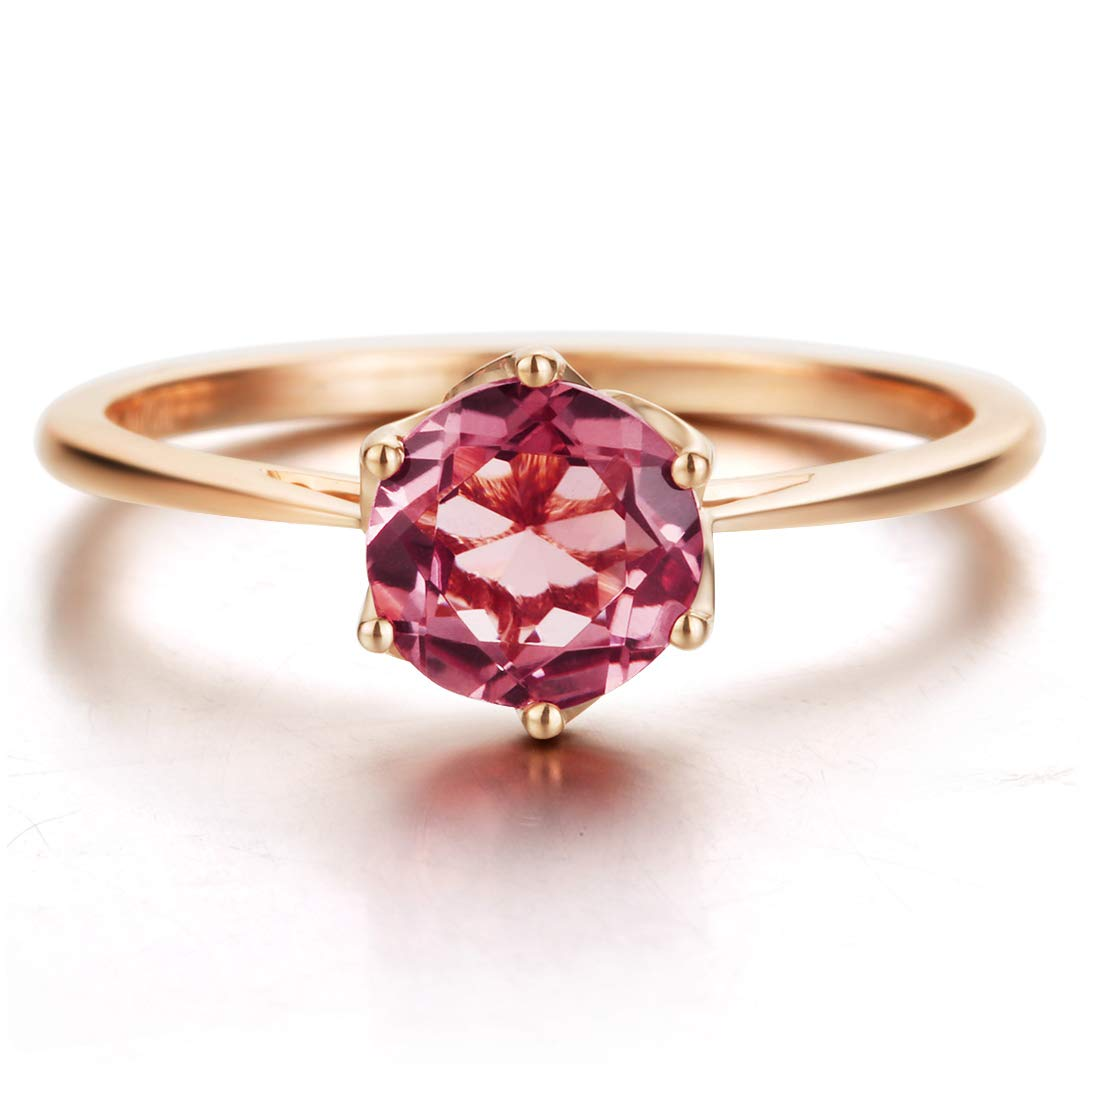 AGVANA 14K Solid Rose Gold(Au585) 0.85Ct Natural Pink Tourmaline Ring Classic Promise Wedding Engagement Ring Fine Jewelry Gift for Women, Ring Size 6